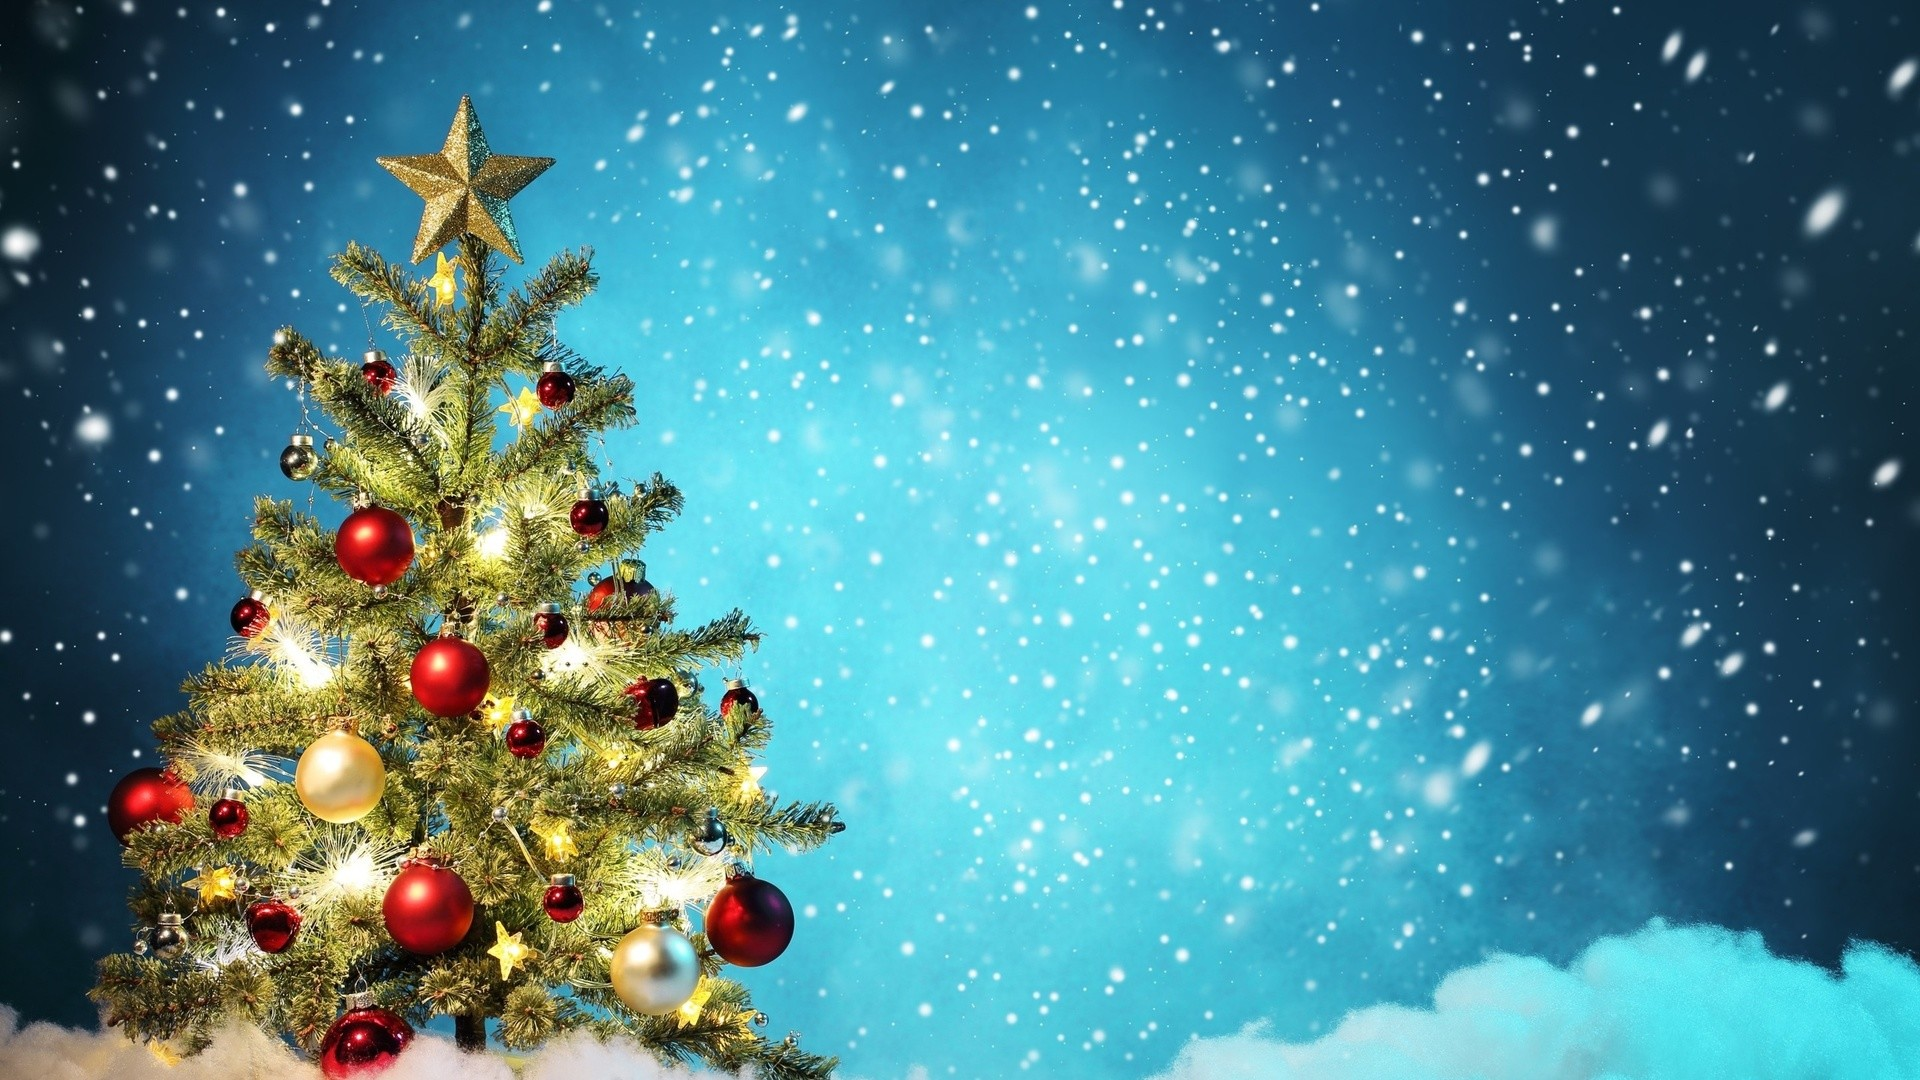 1920x1080 7. christmas-wallpaper-free7-600x338